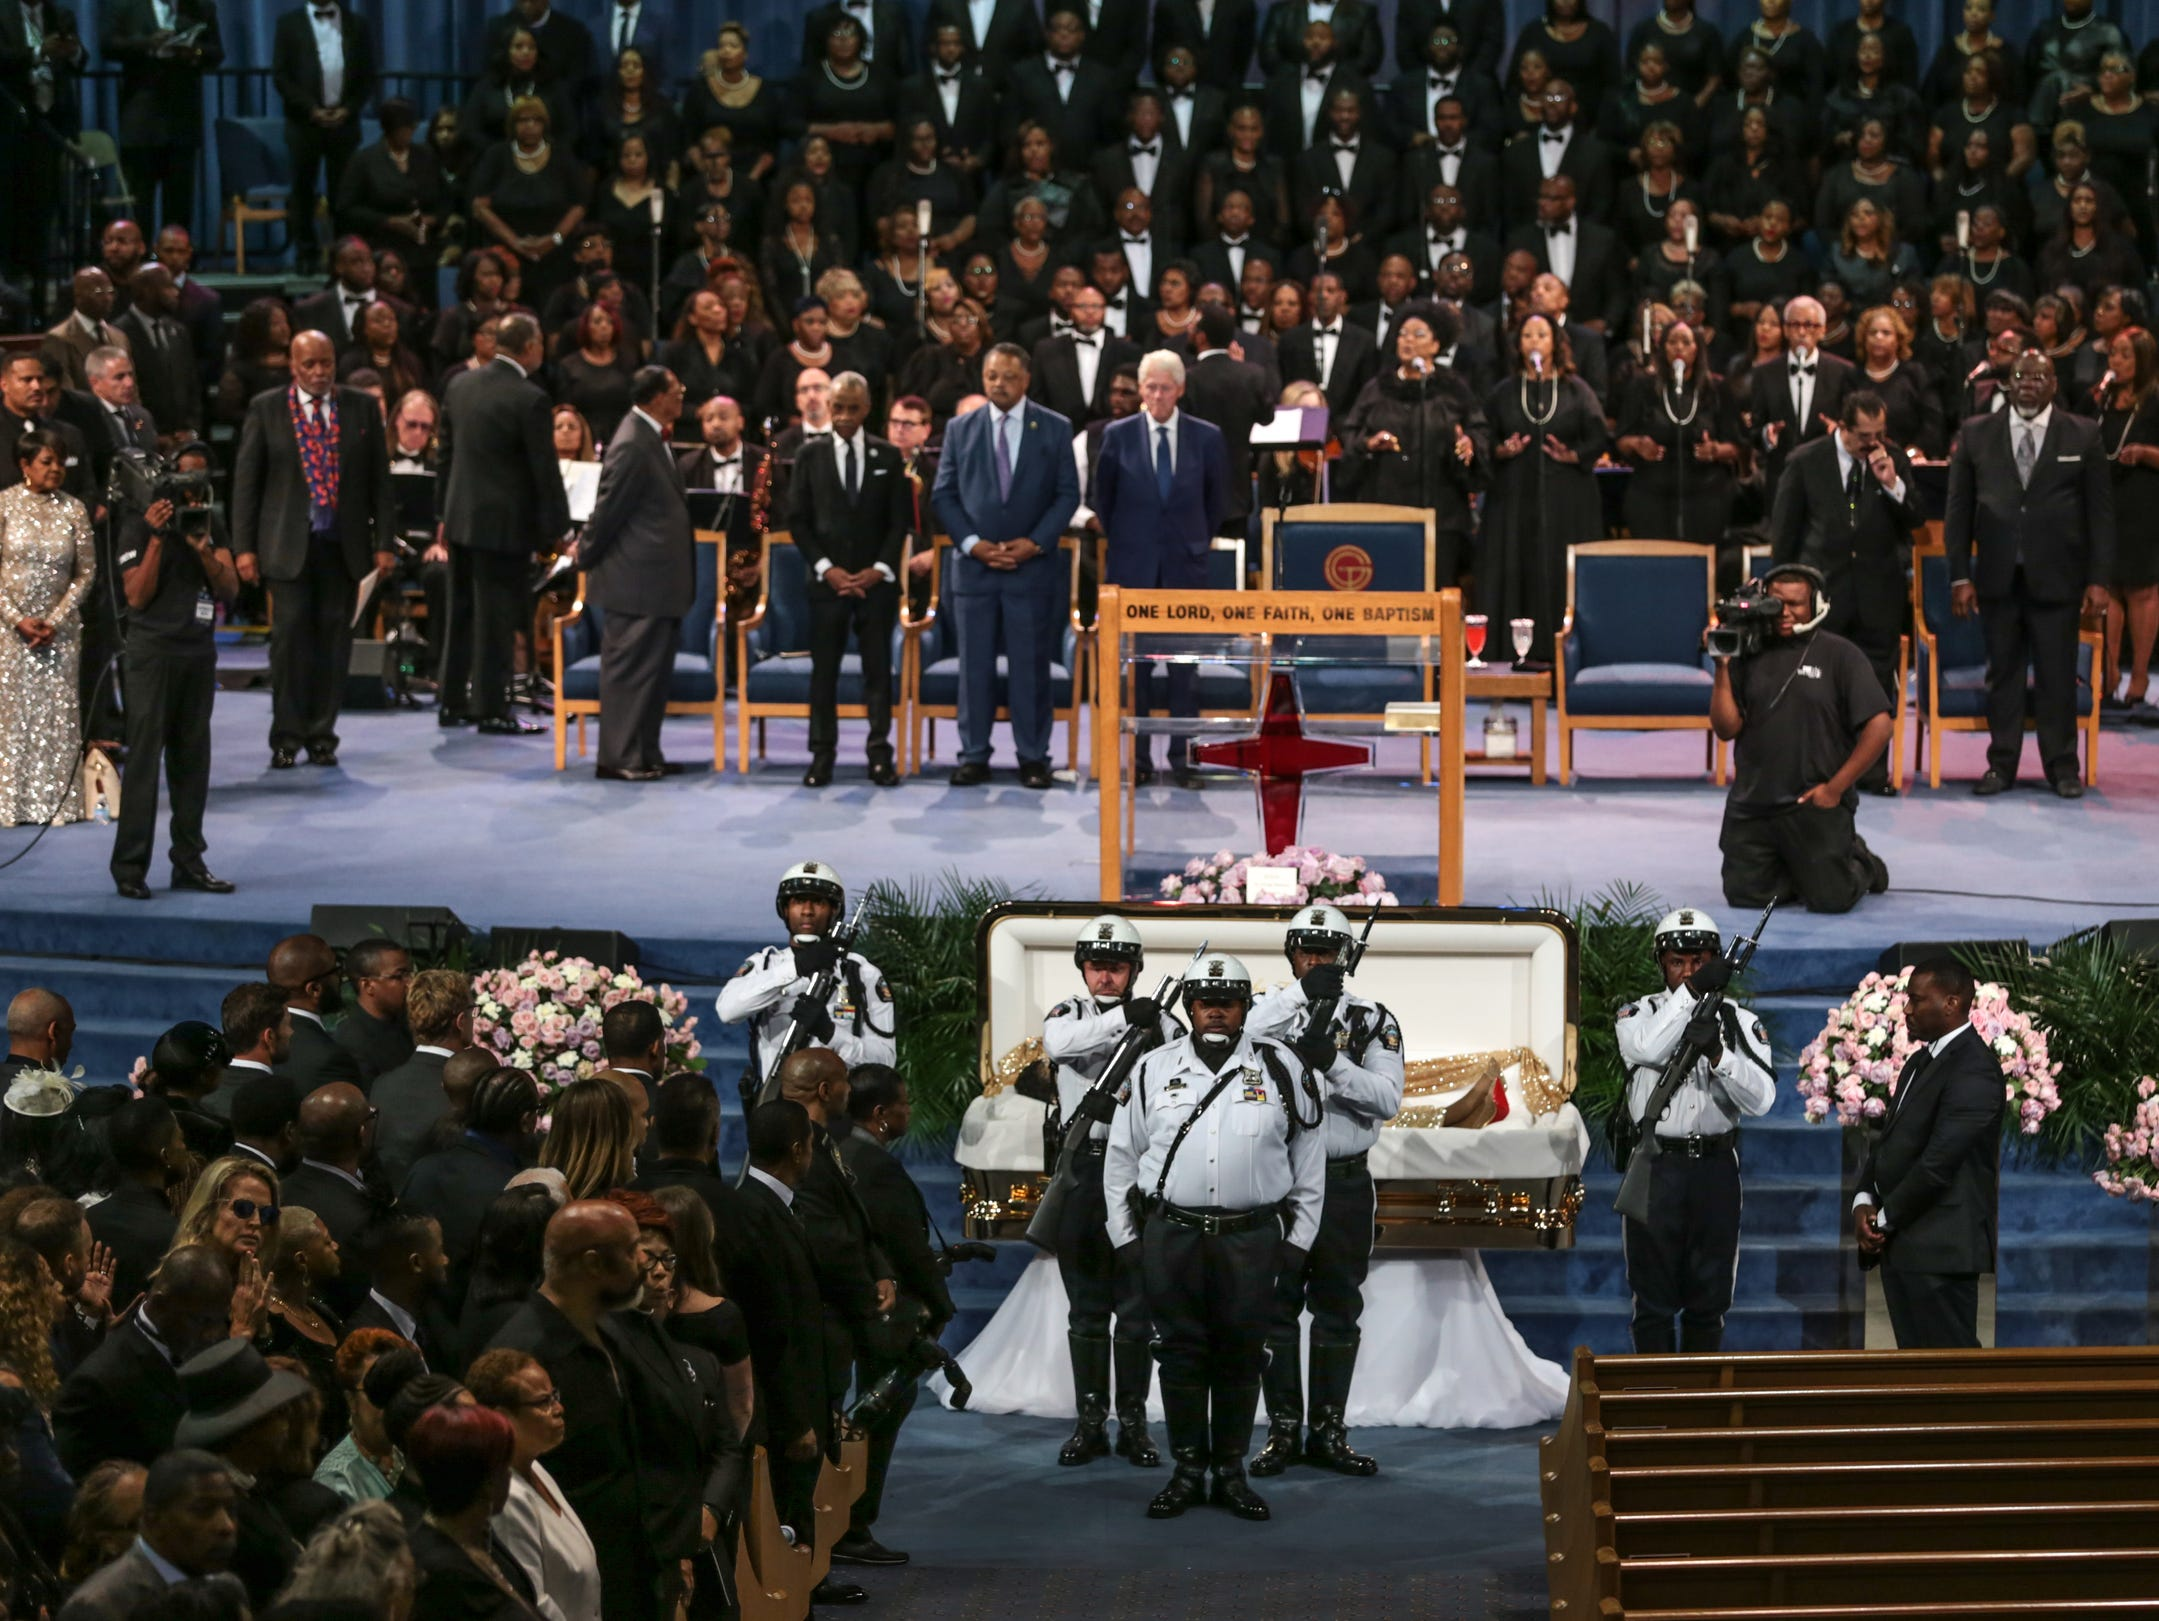 Police exit the funeral of the late Aretha Franklin after visiting her casket during her funeral at Greater Grace Temple in Detroit on Friday, August 31, 2018.